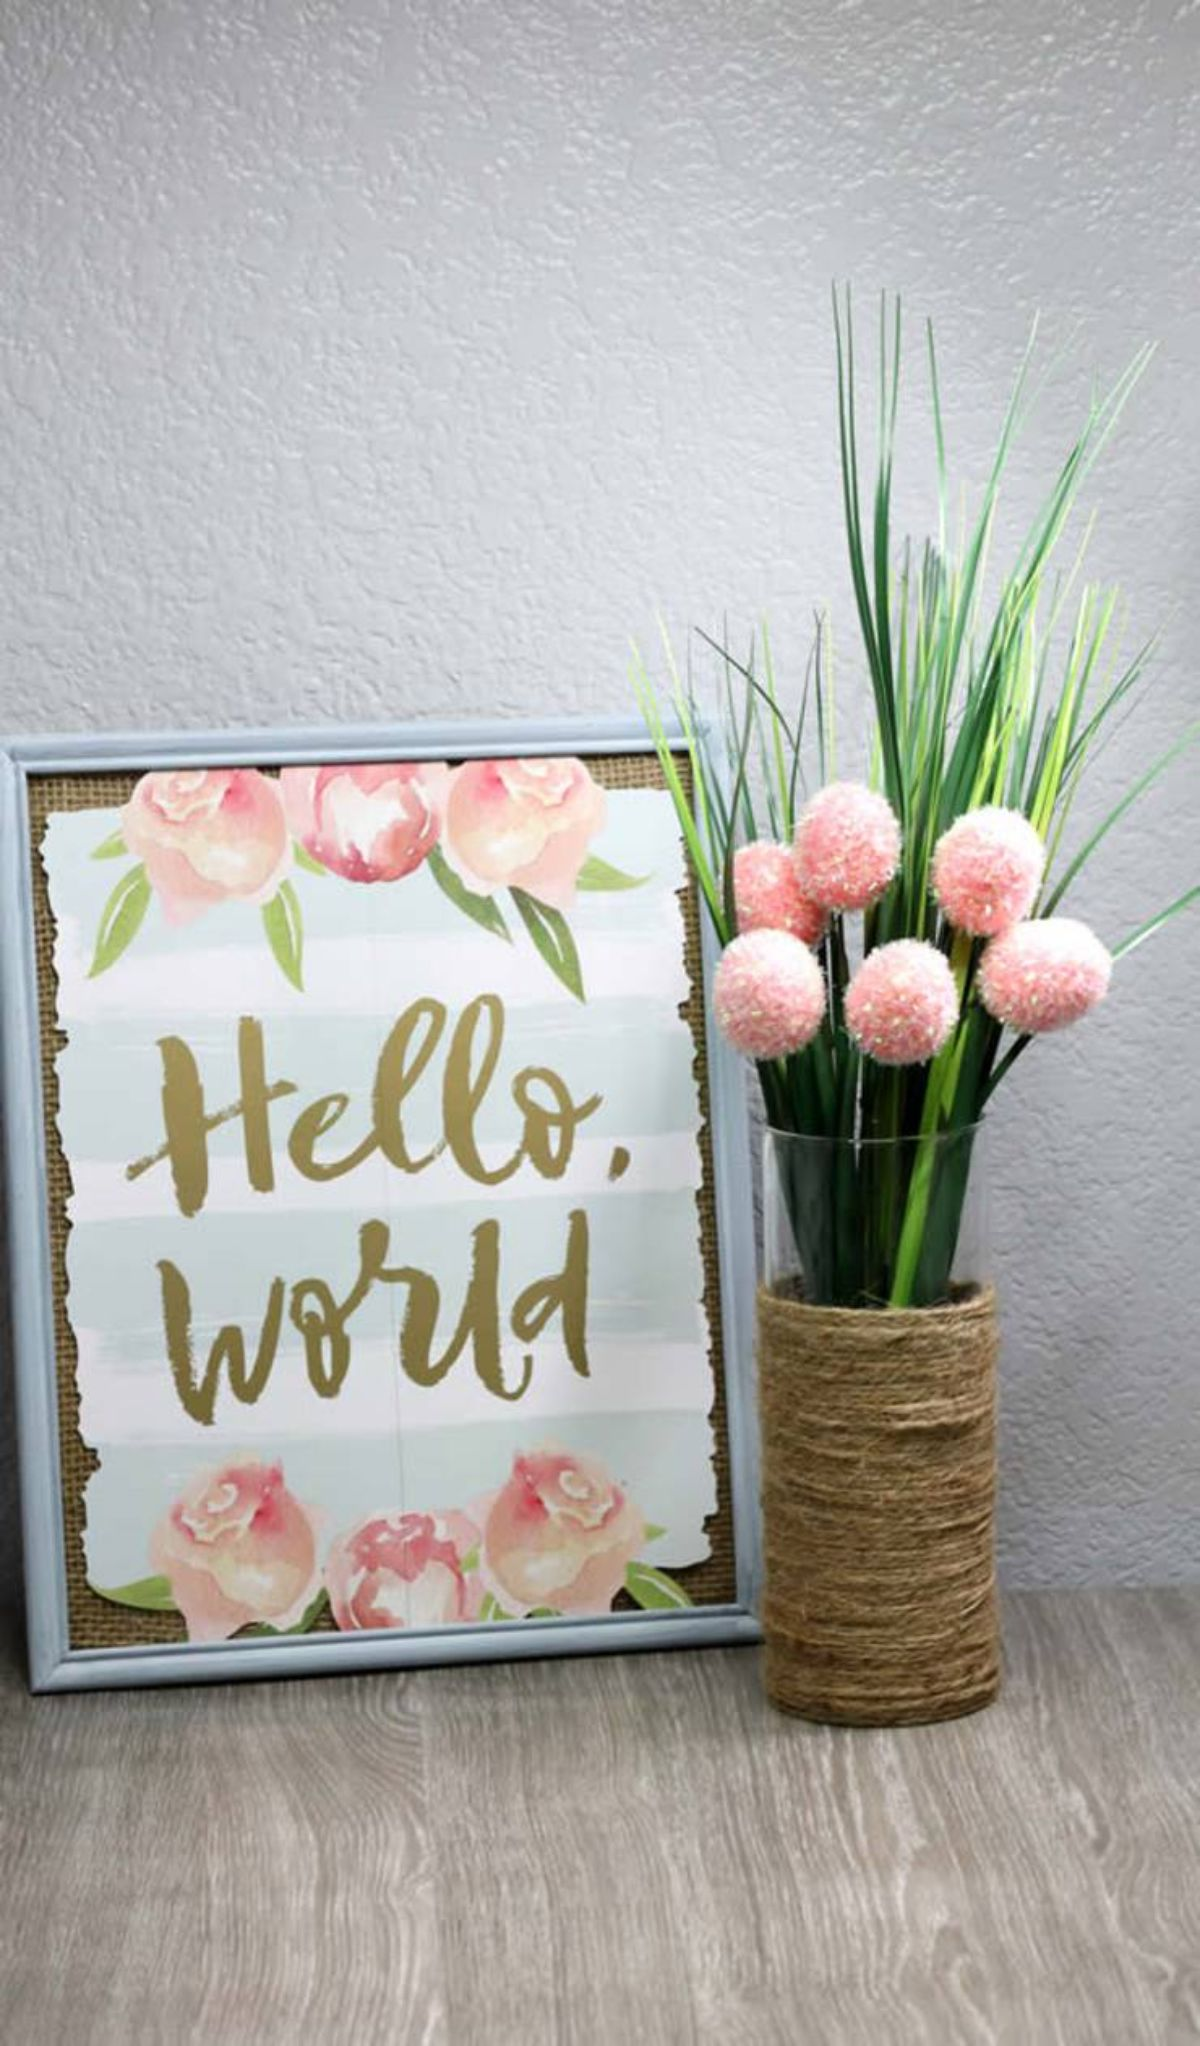 """Next to a painted sign saying """"hello world!"""" is a thin glass vase filled with tulips. Twine is wrapped around the bottom half of the vase"""